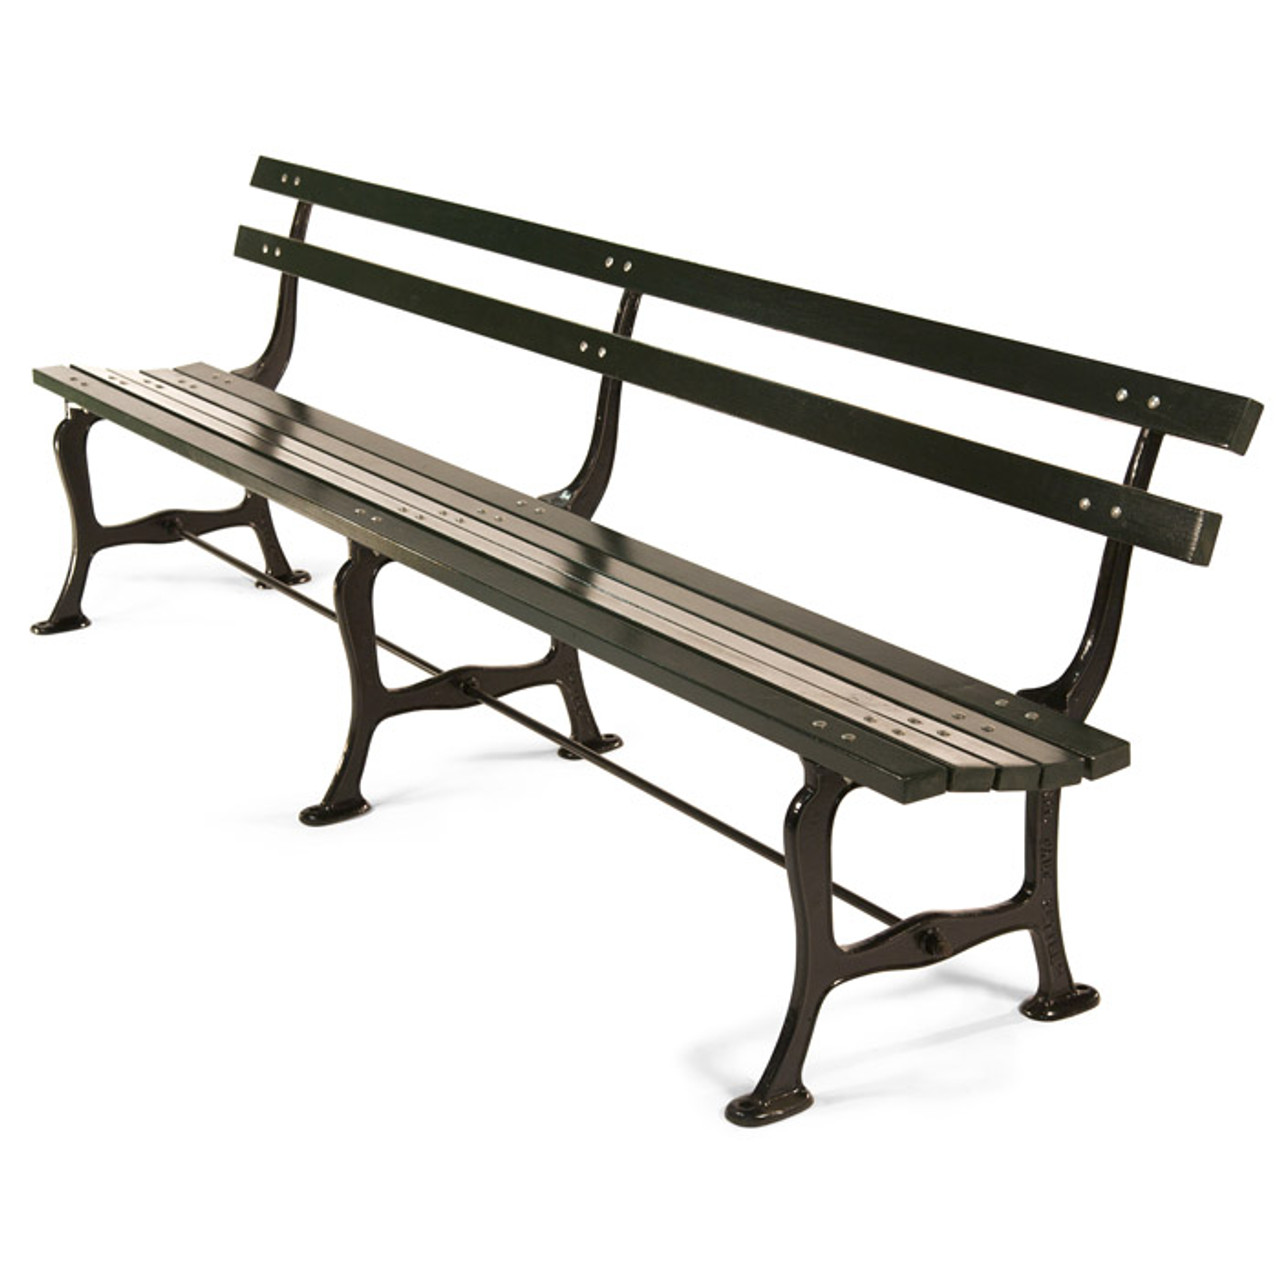 Central Park Settee Kenneth Lynch And Sons - Park bench and table